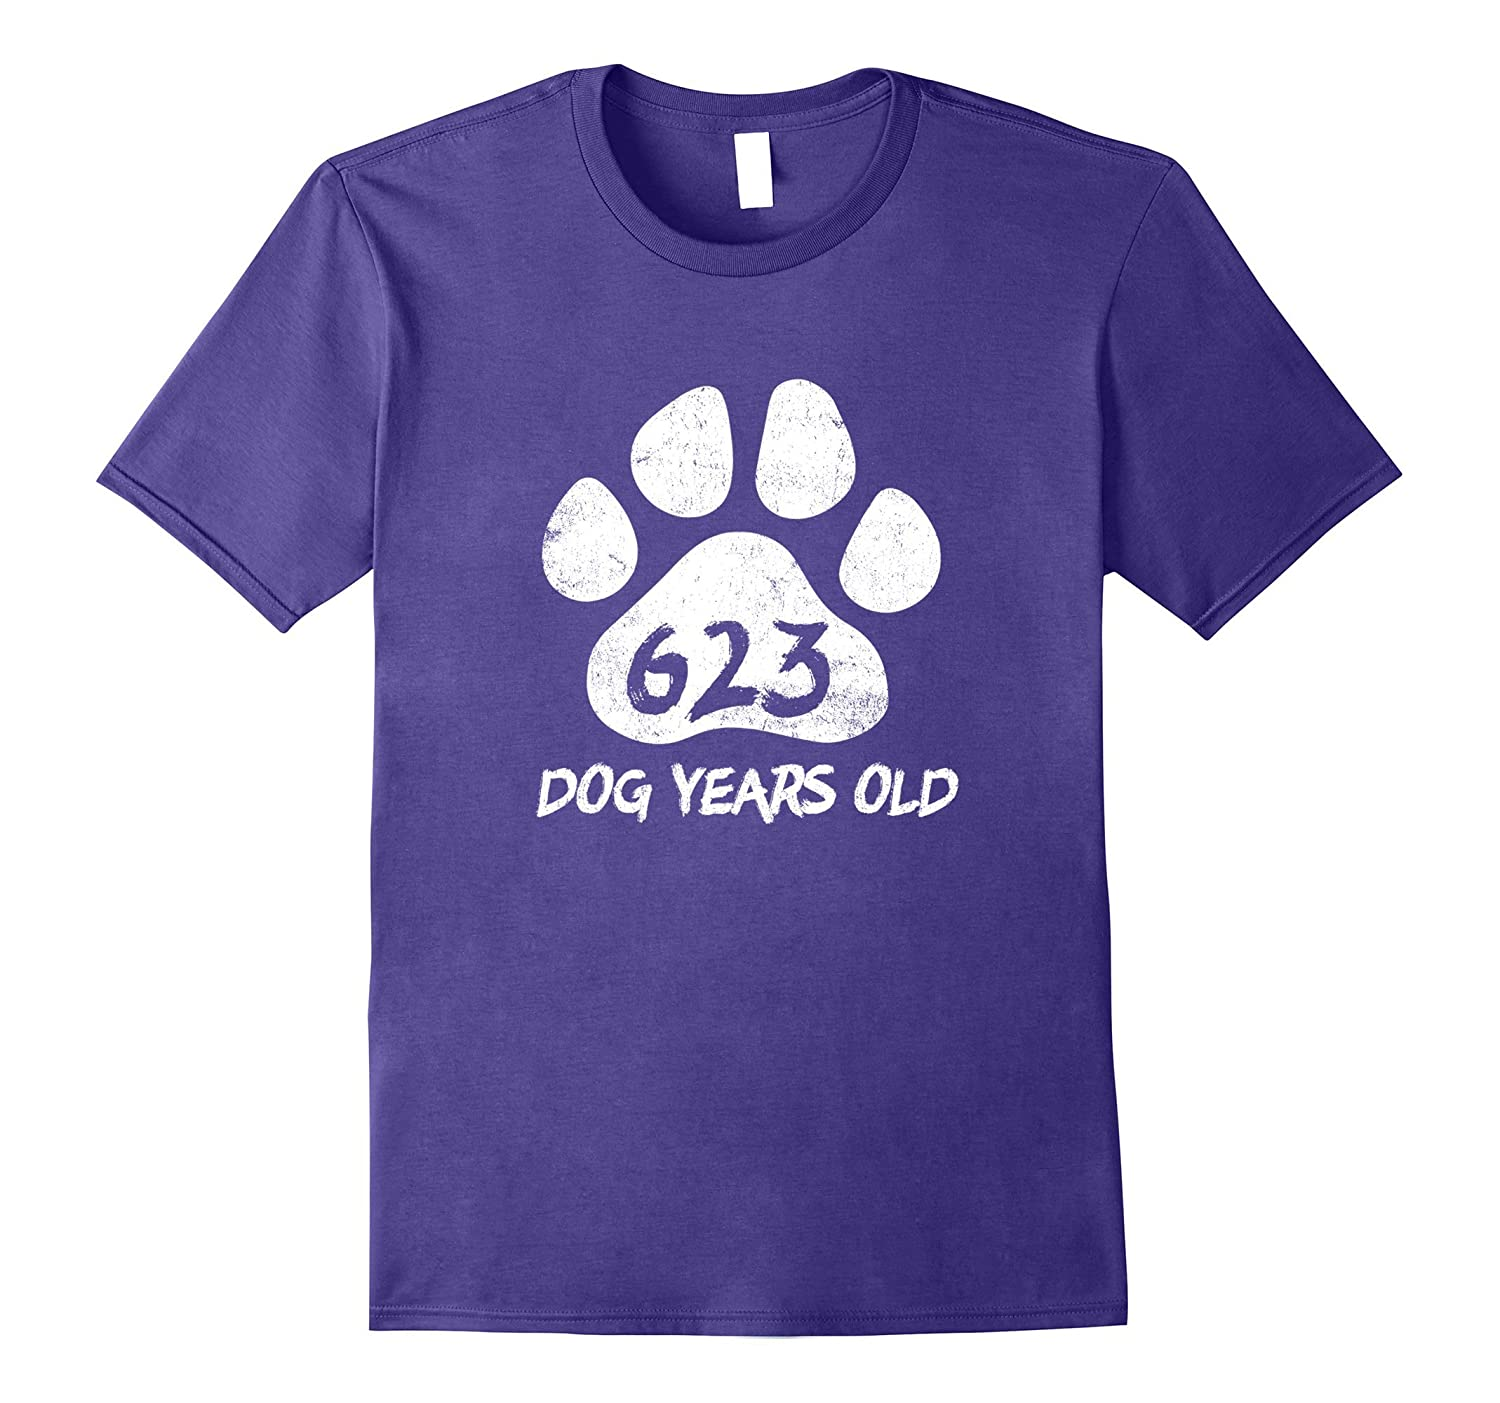 623 Dog Years Old Funny 89th Birthday T-Shirt Novelty Gift-PL